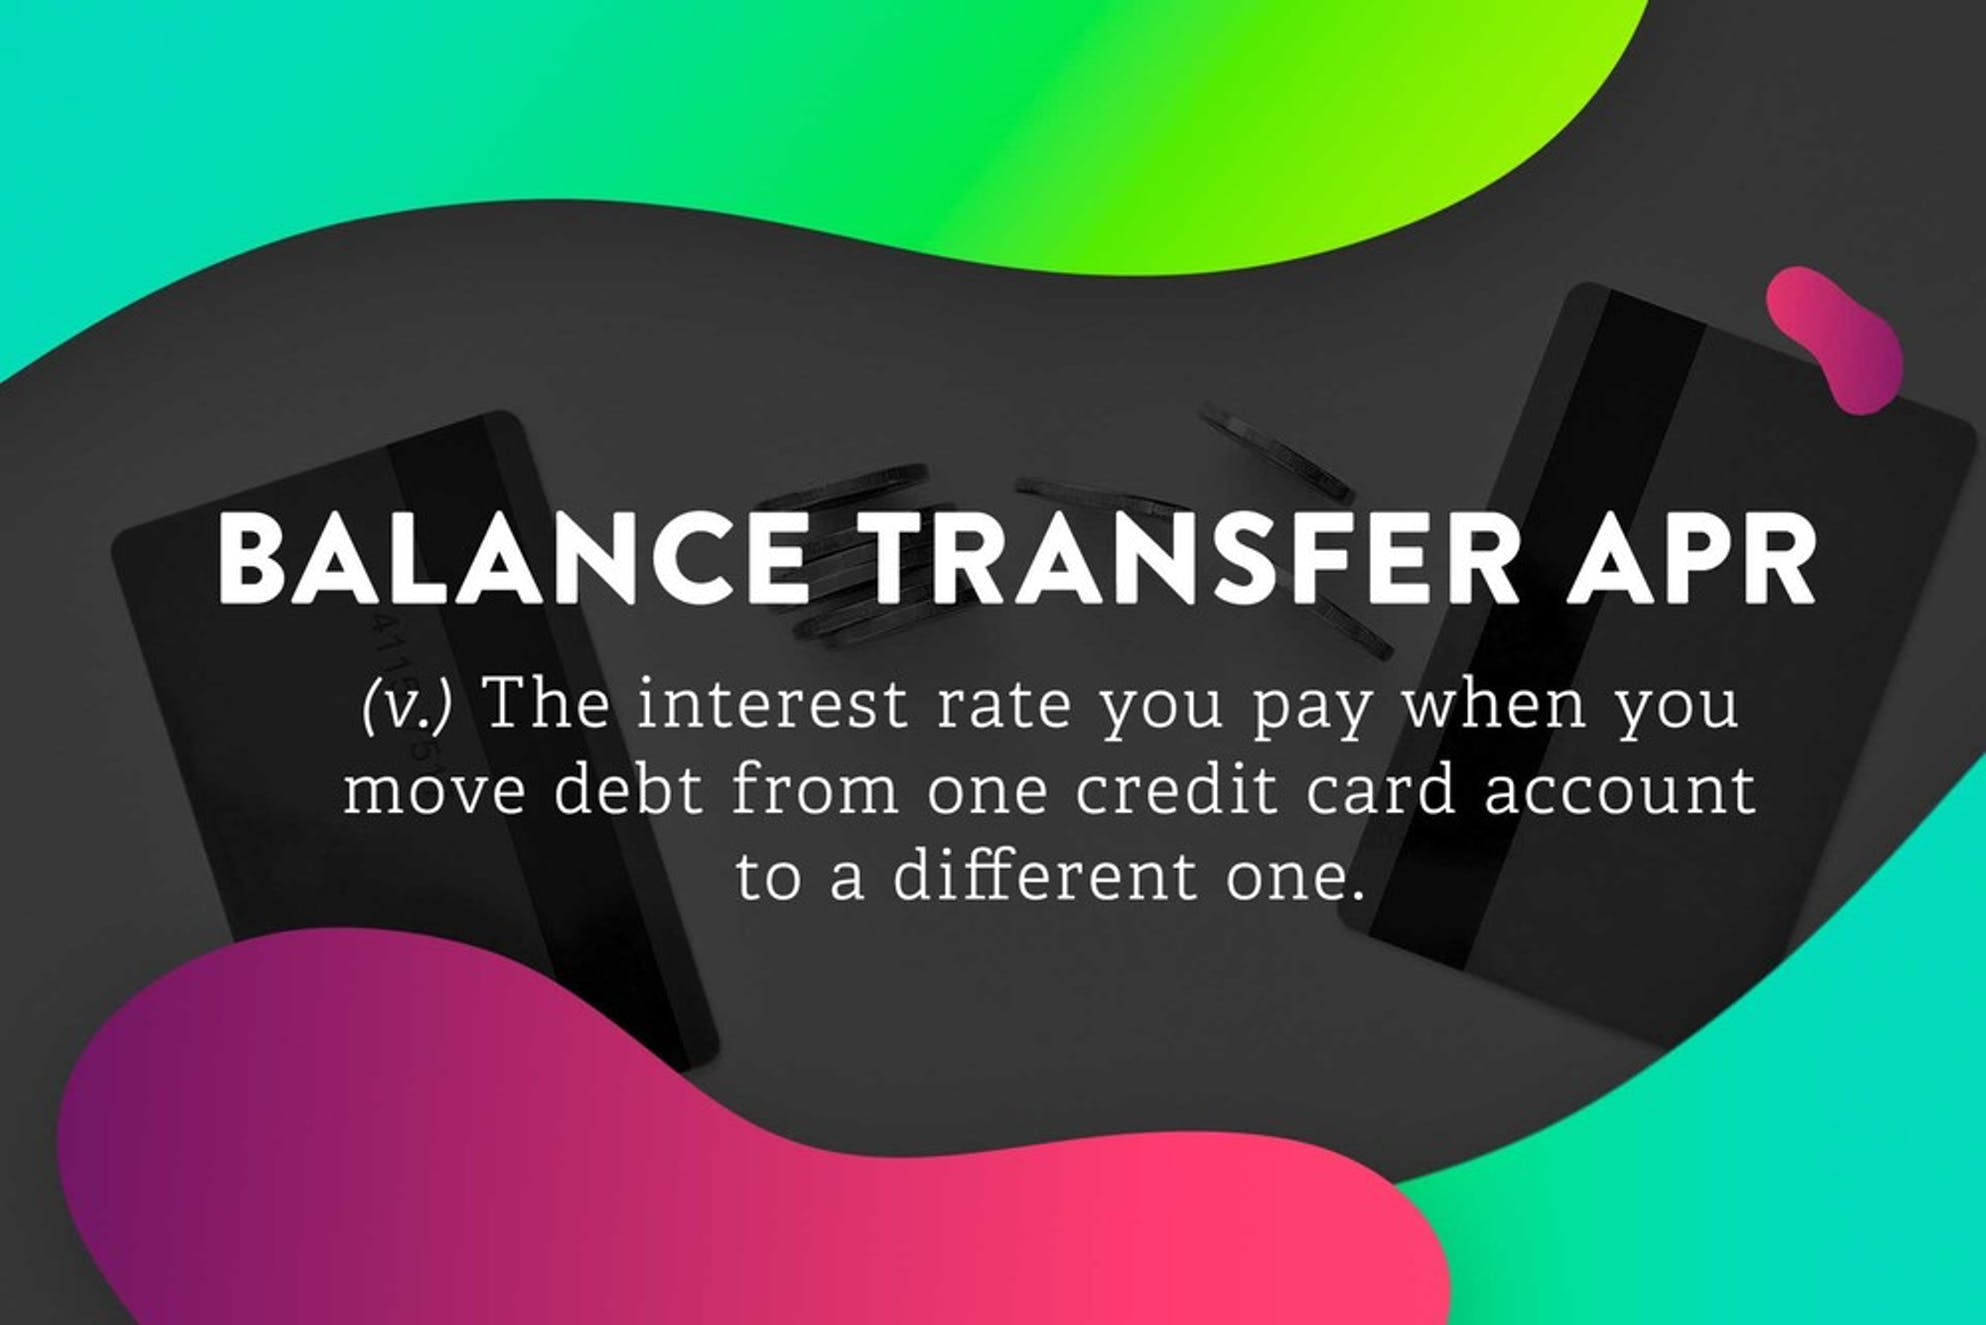 The definition of Balance Transfer APR